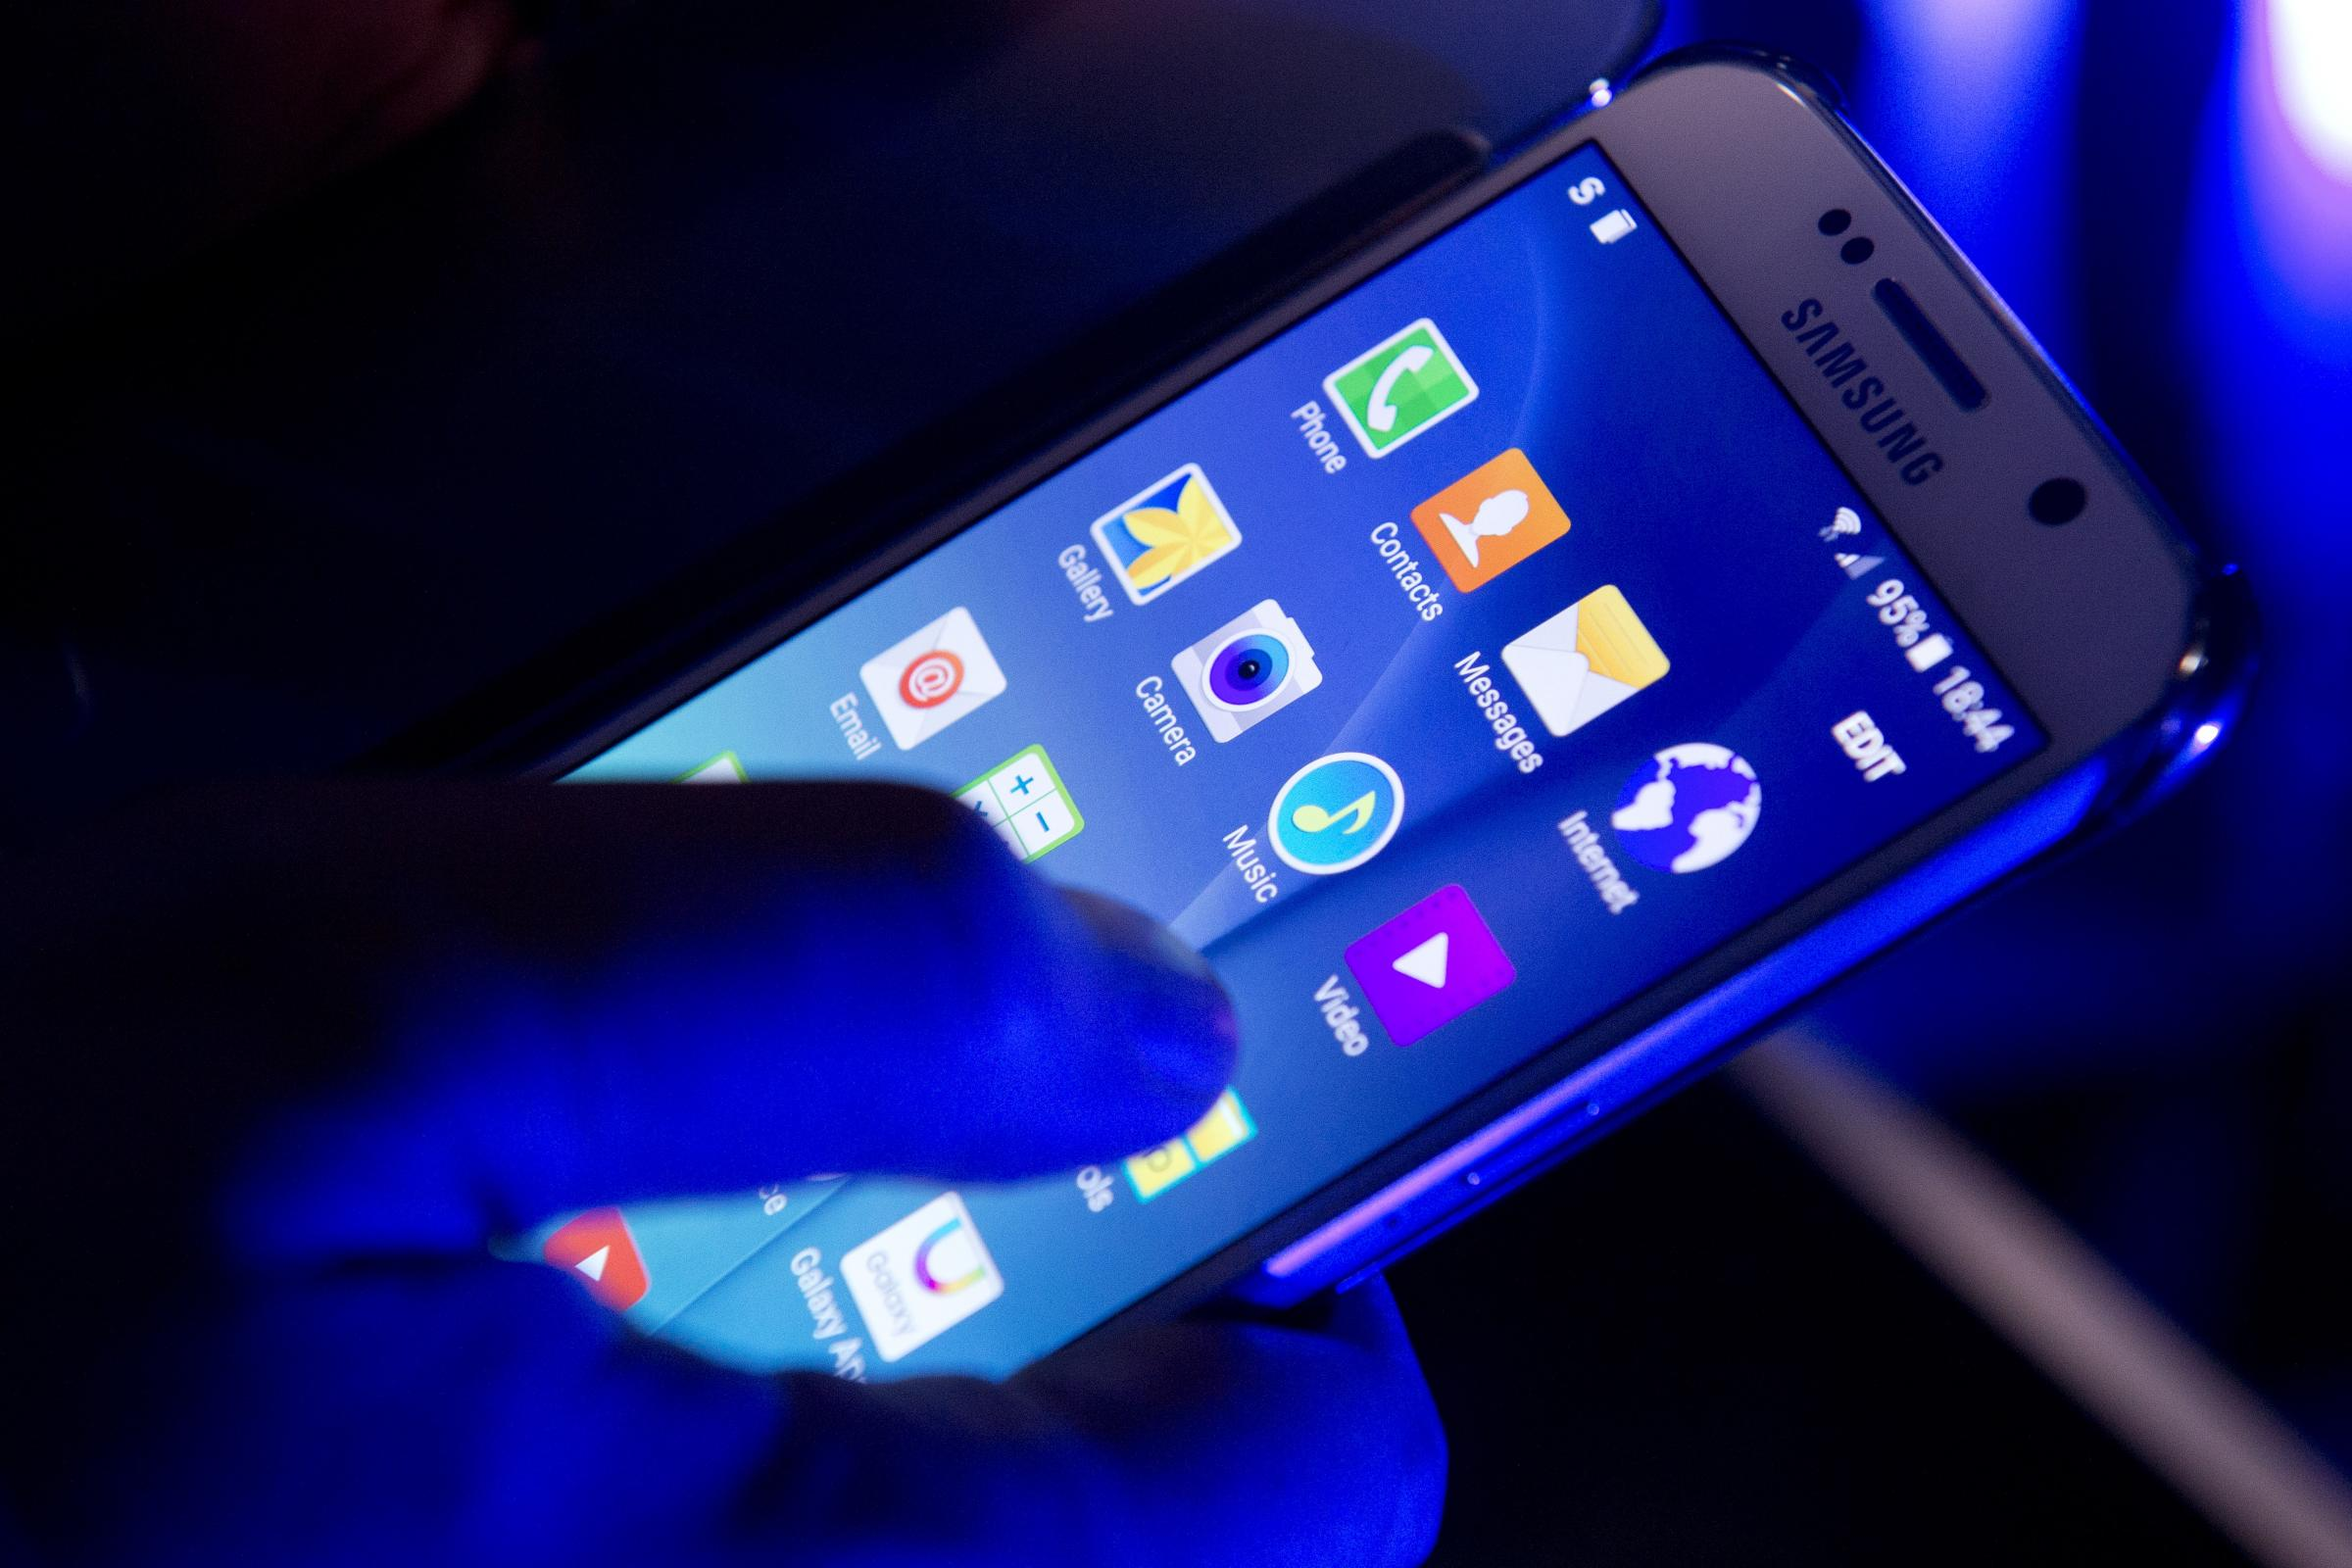 Samsung Galaxy S6 phones unveiled